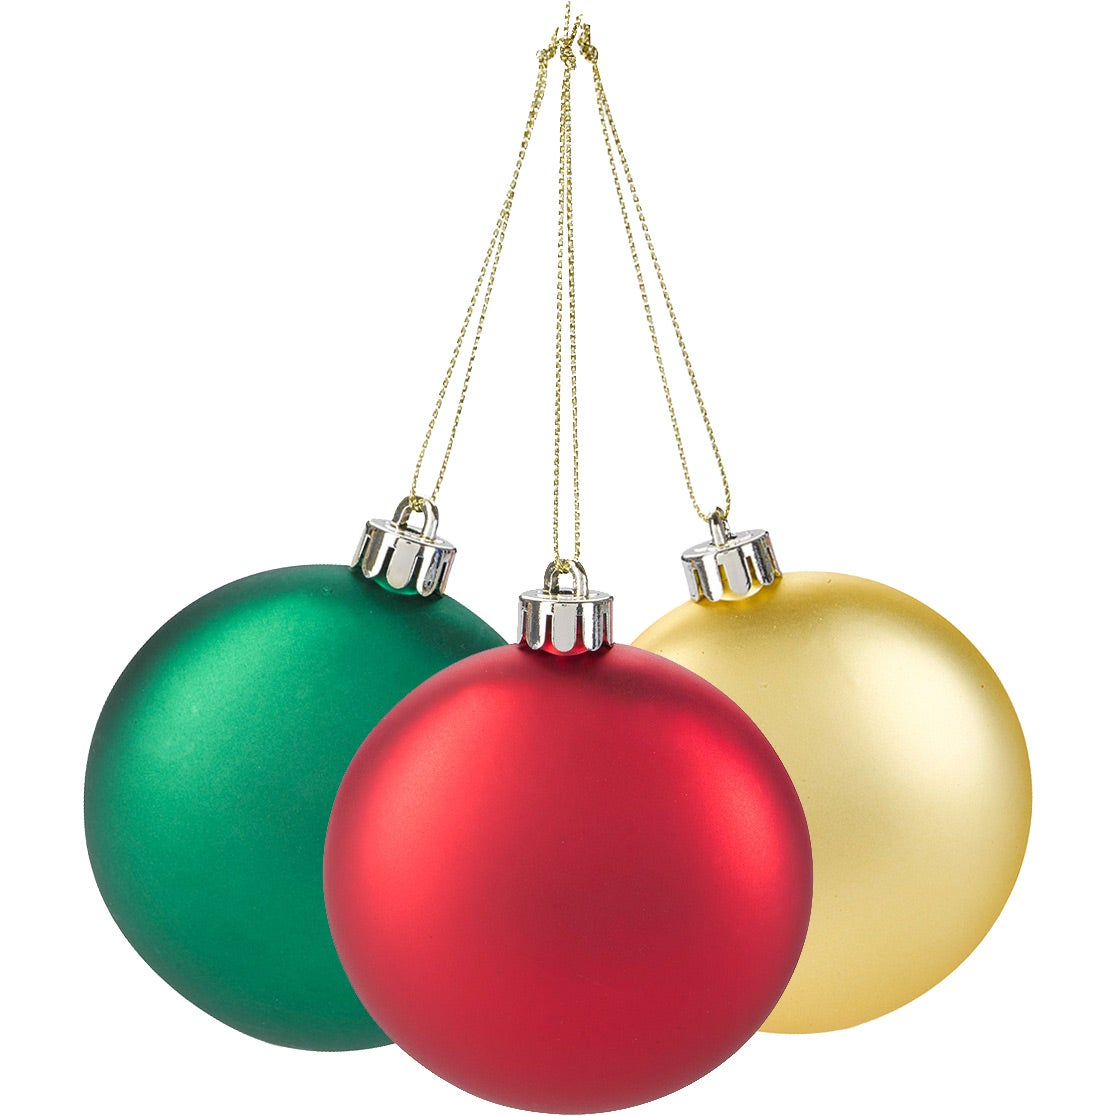 Promotional Round Disk Ornaments with Custom Logo for $1.50 Ea.